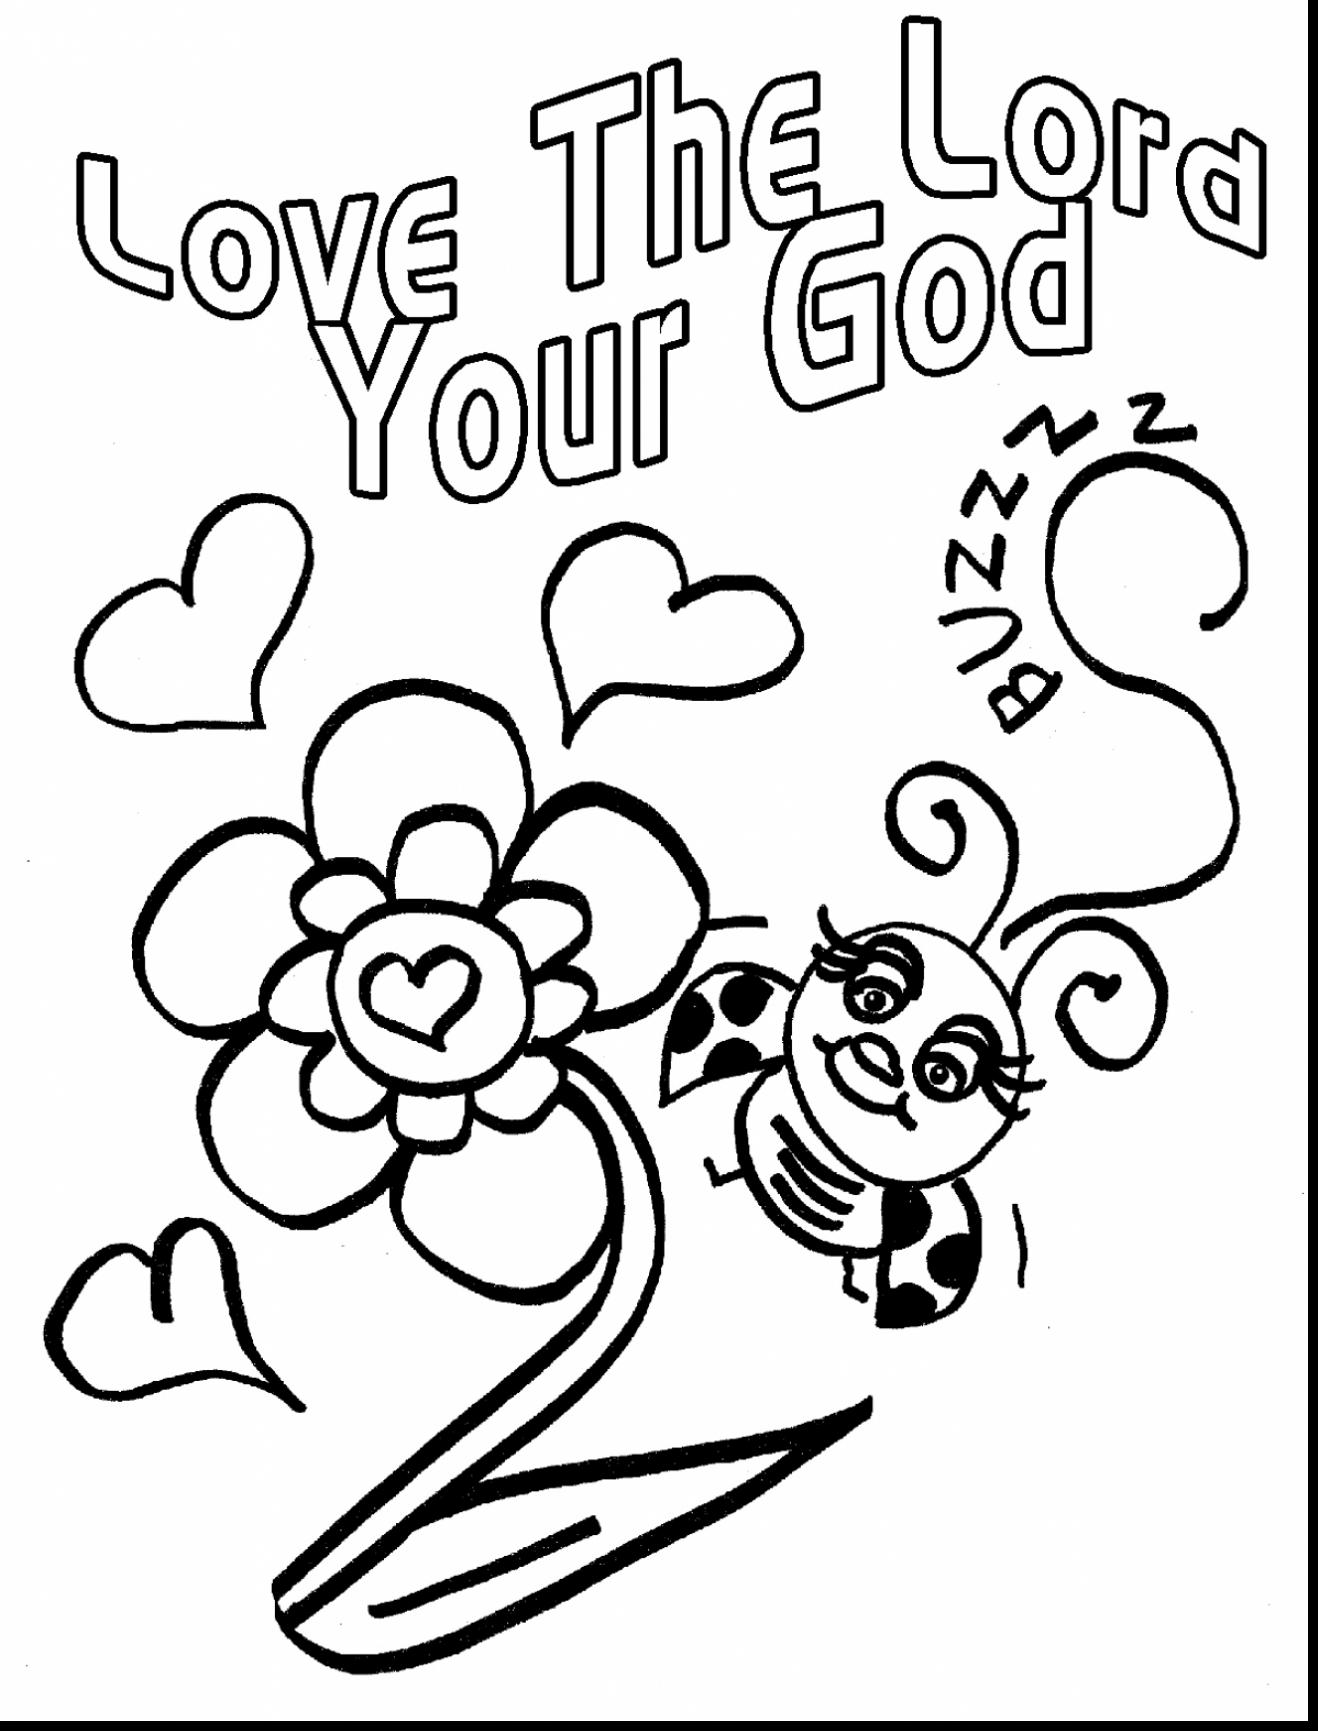 Love Coloring Pages Free Printable at GetDrawings.com | Free for ...